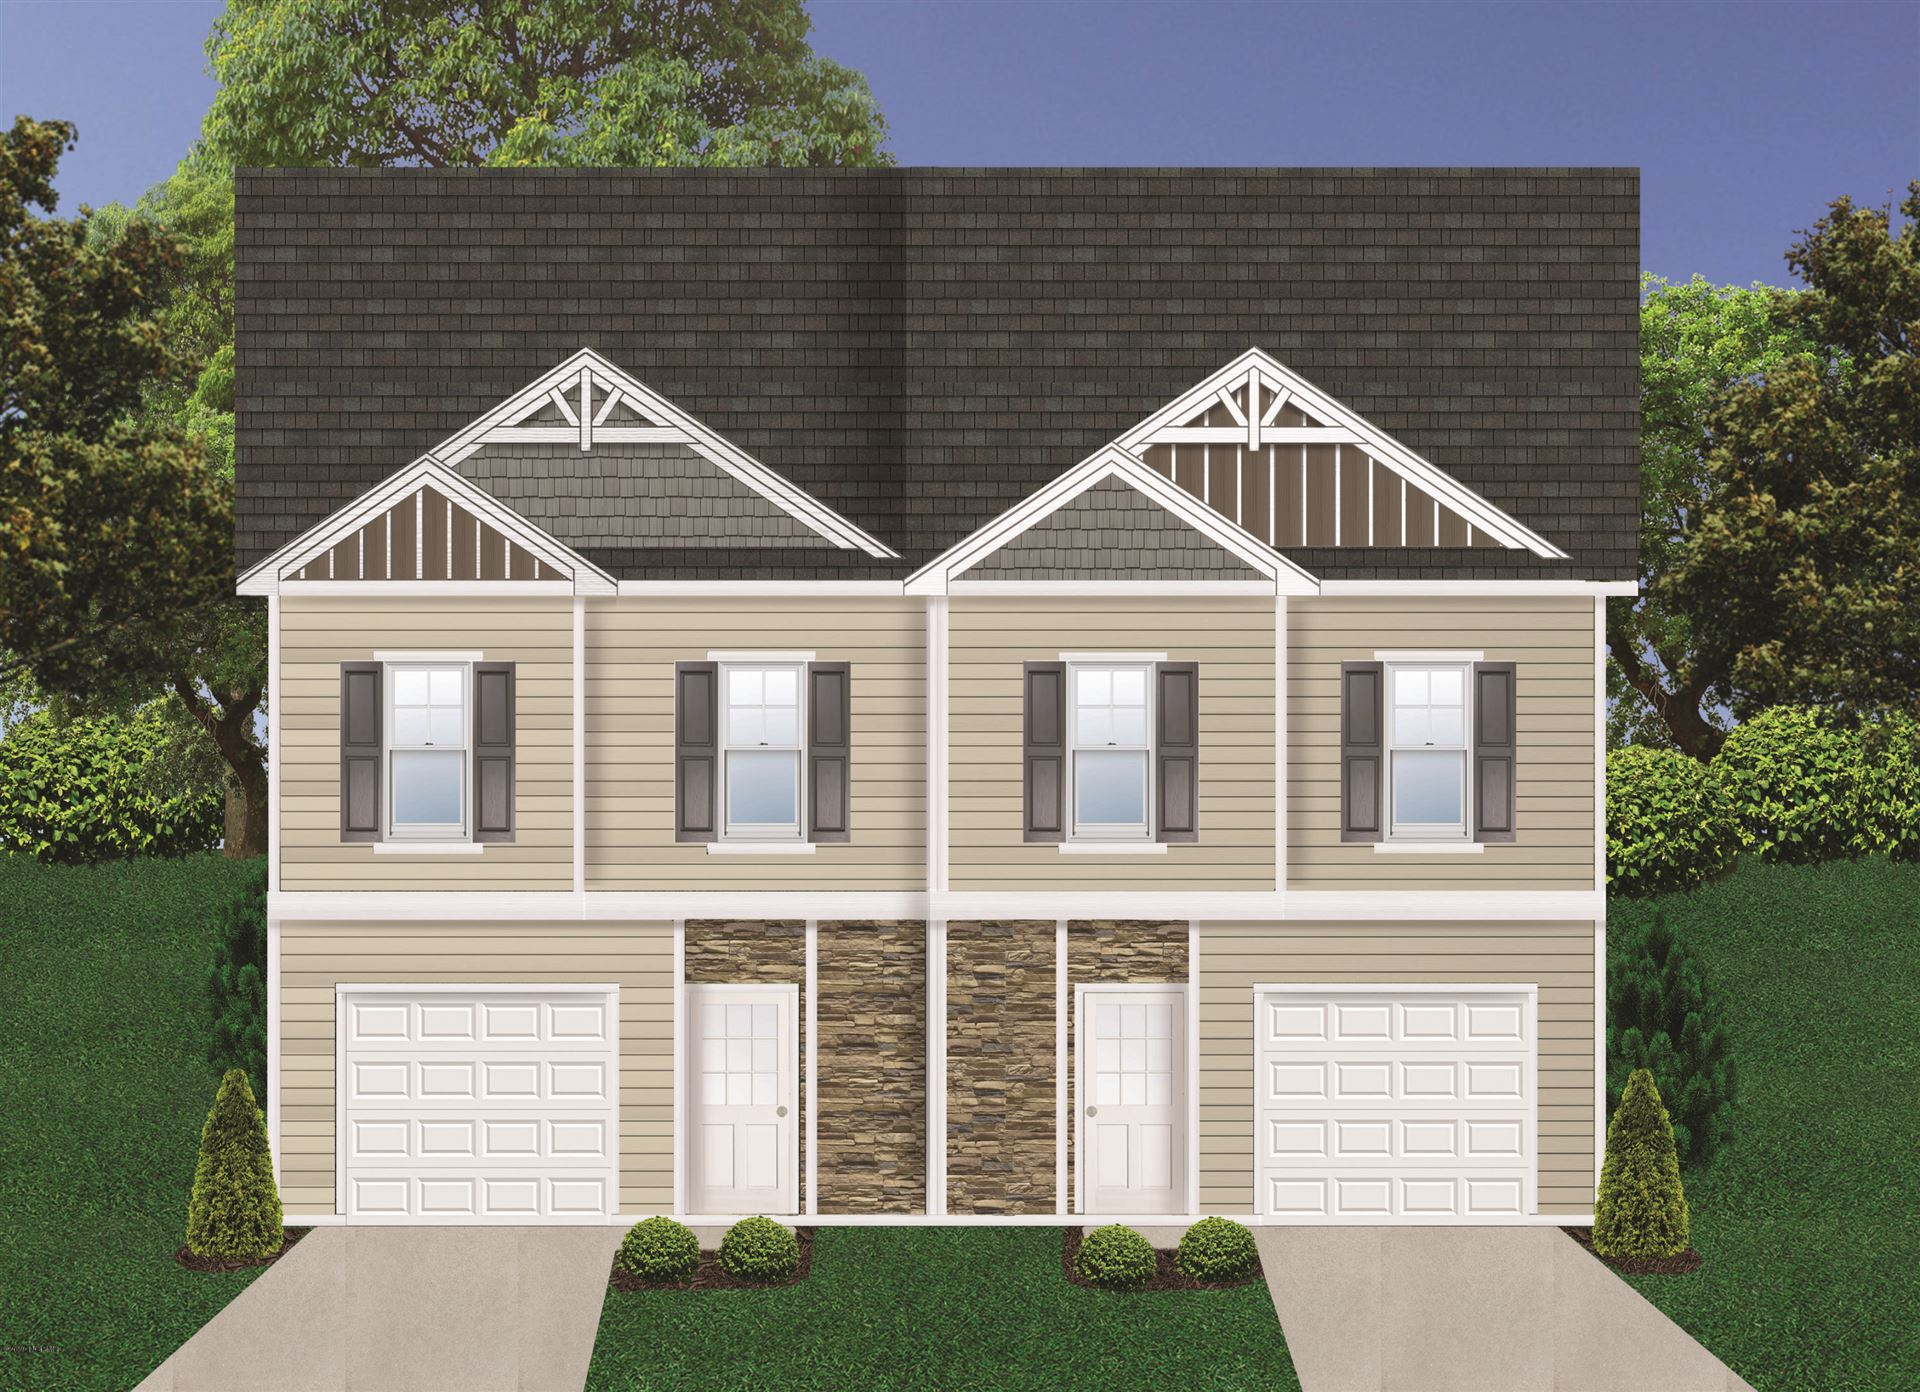 Photo for 410 Vandemere Court, Holly Ridge, NC 28445 (MLS # 100265184)